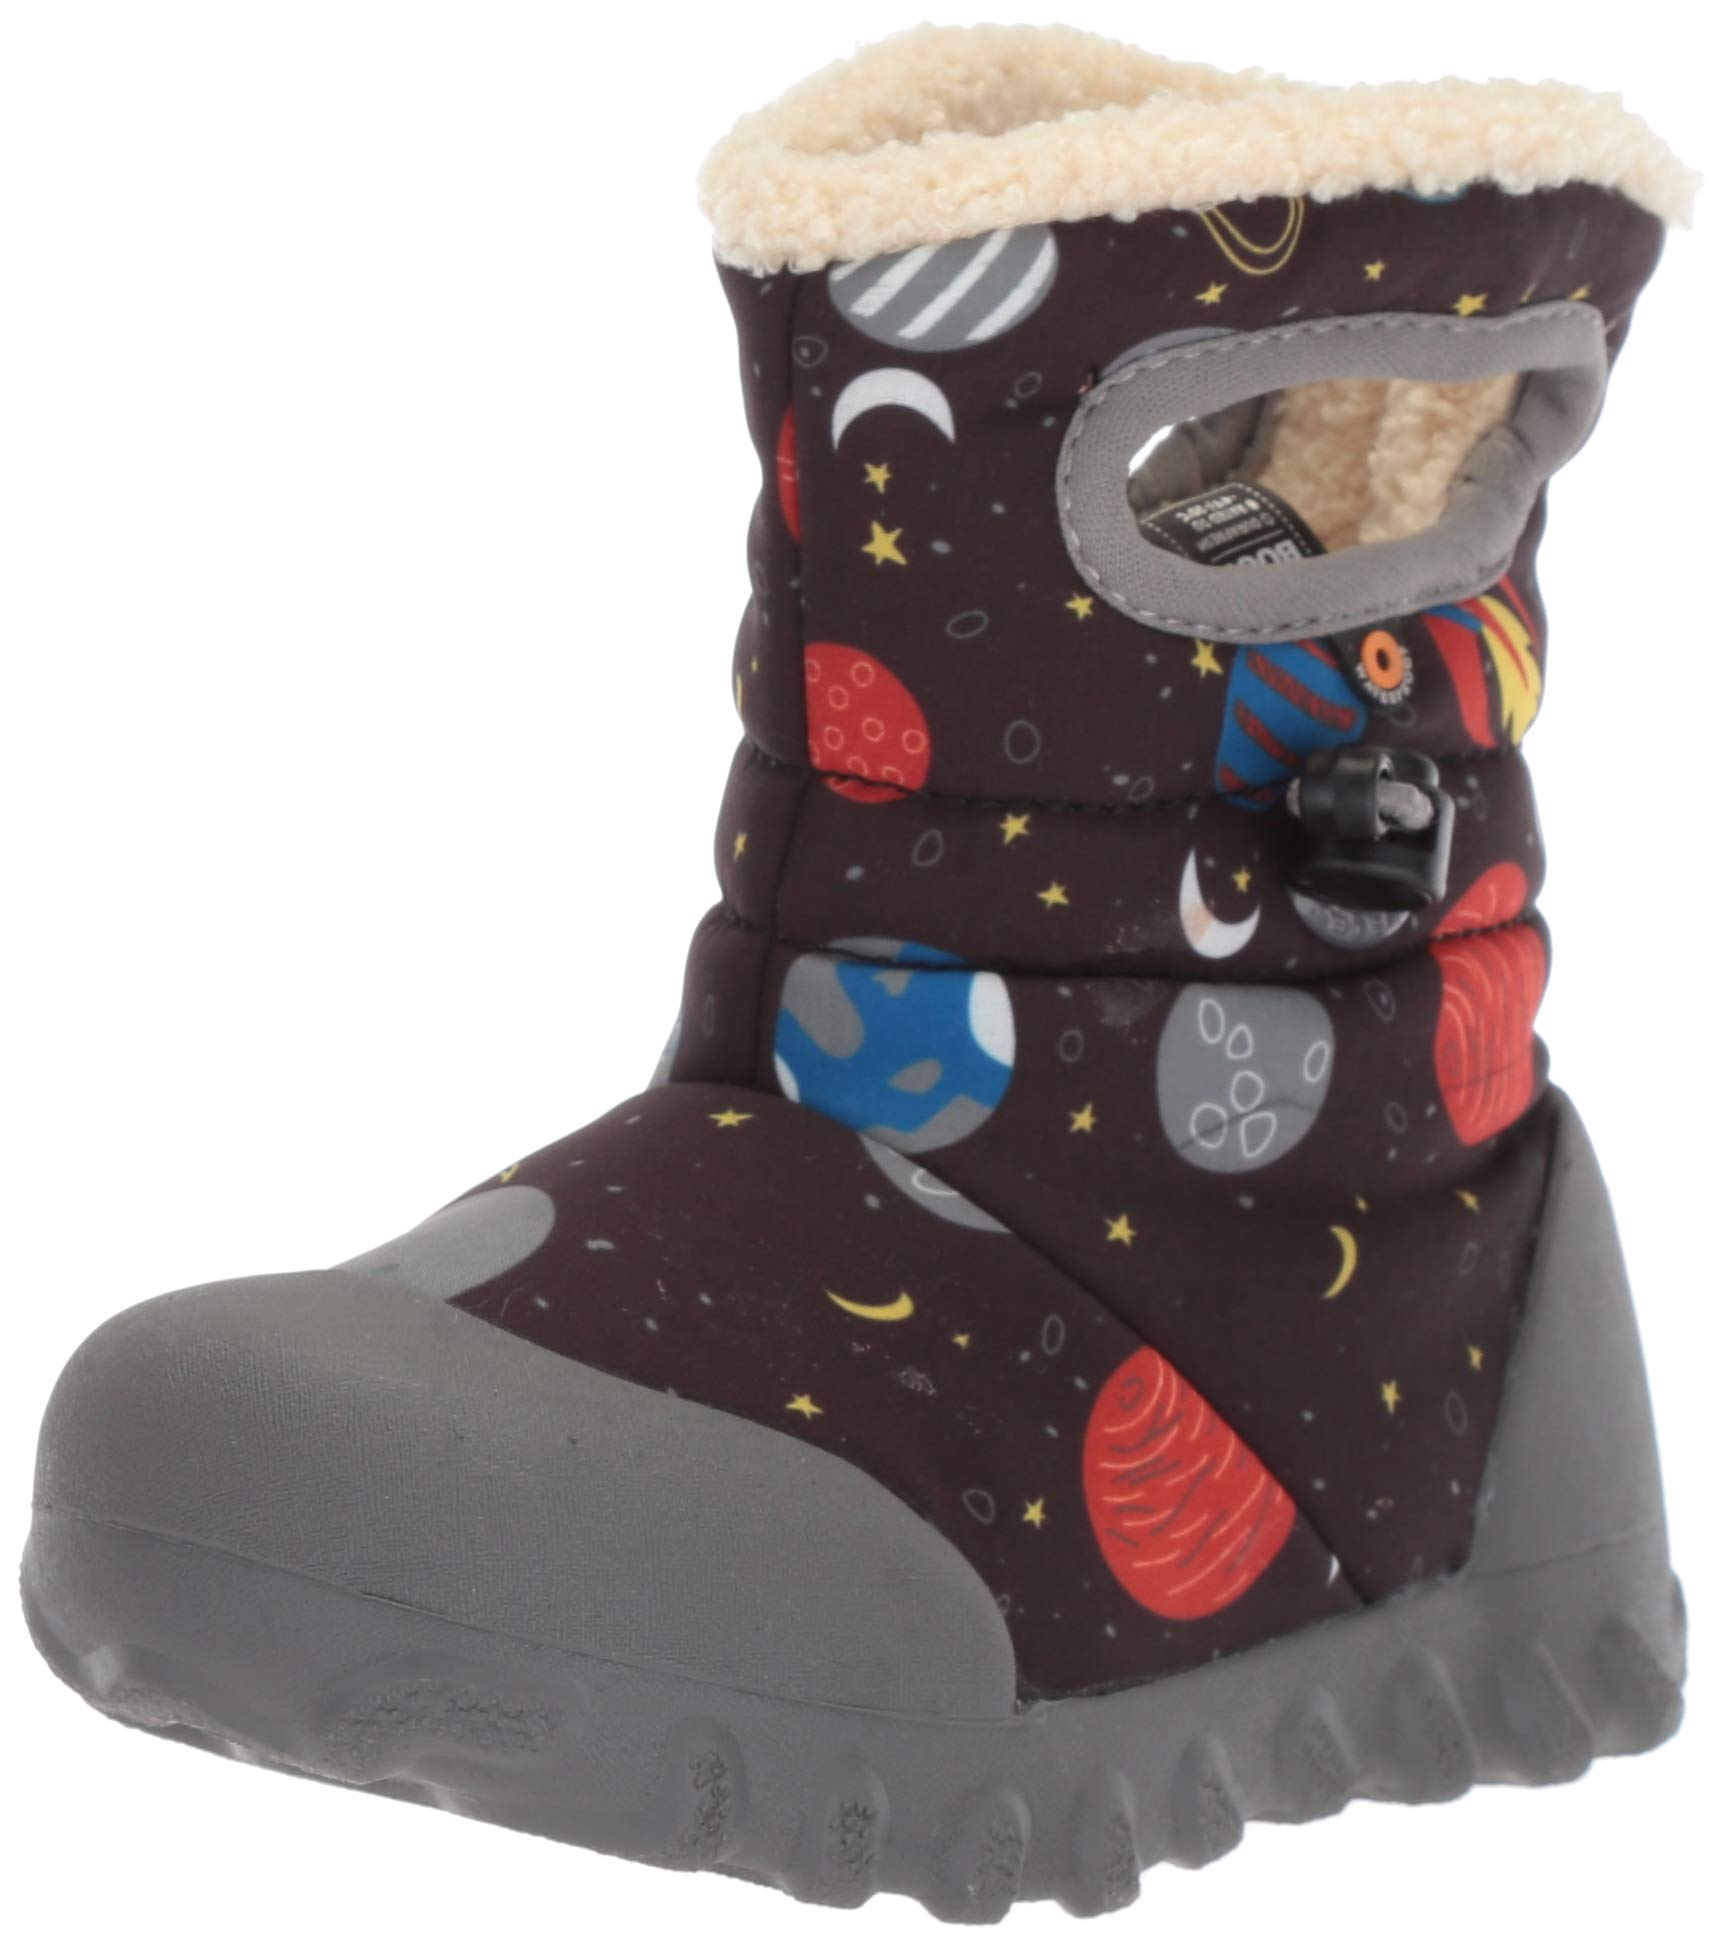 Bogs Baby B-Moc Waterproof Insulated Kids/Toddler Winter Boot, Space Print/Black/Multi, 10 M US